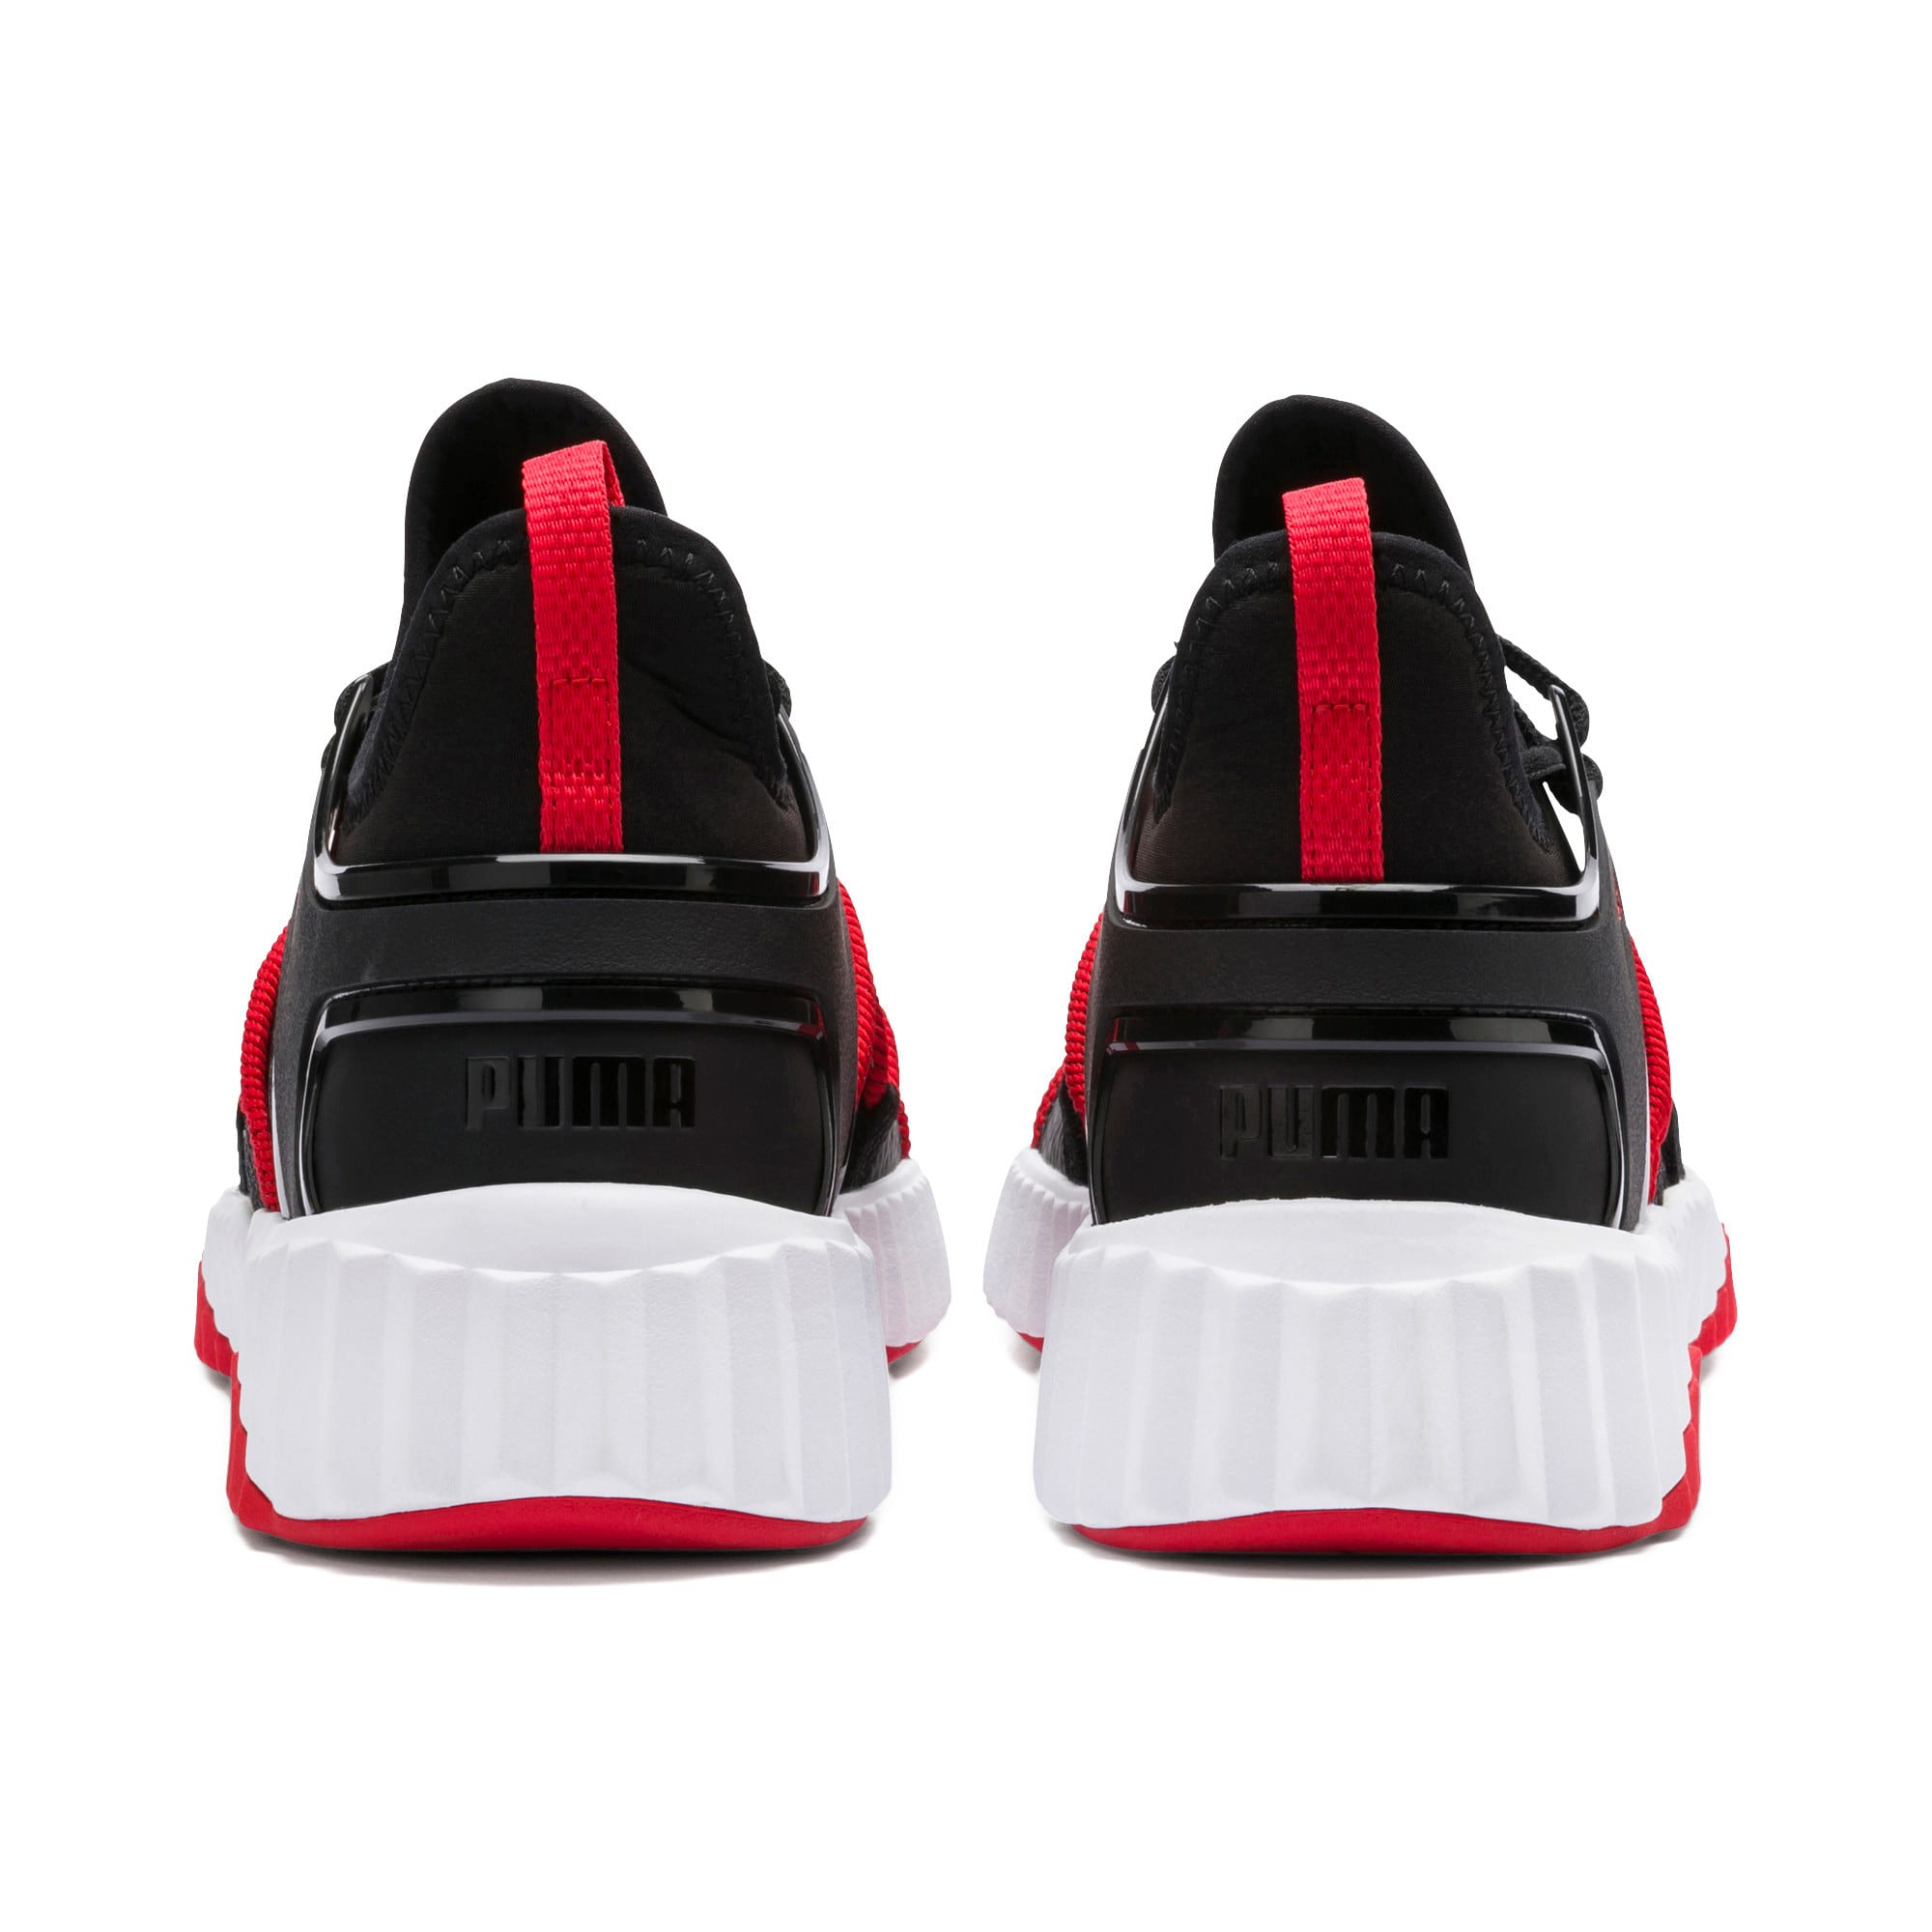 Thumbnail 4 of Defy Deco Men's Training Shoes, Puma Black-High Risk Red, medium